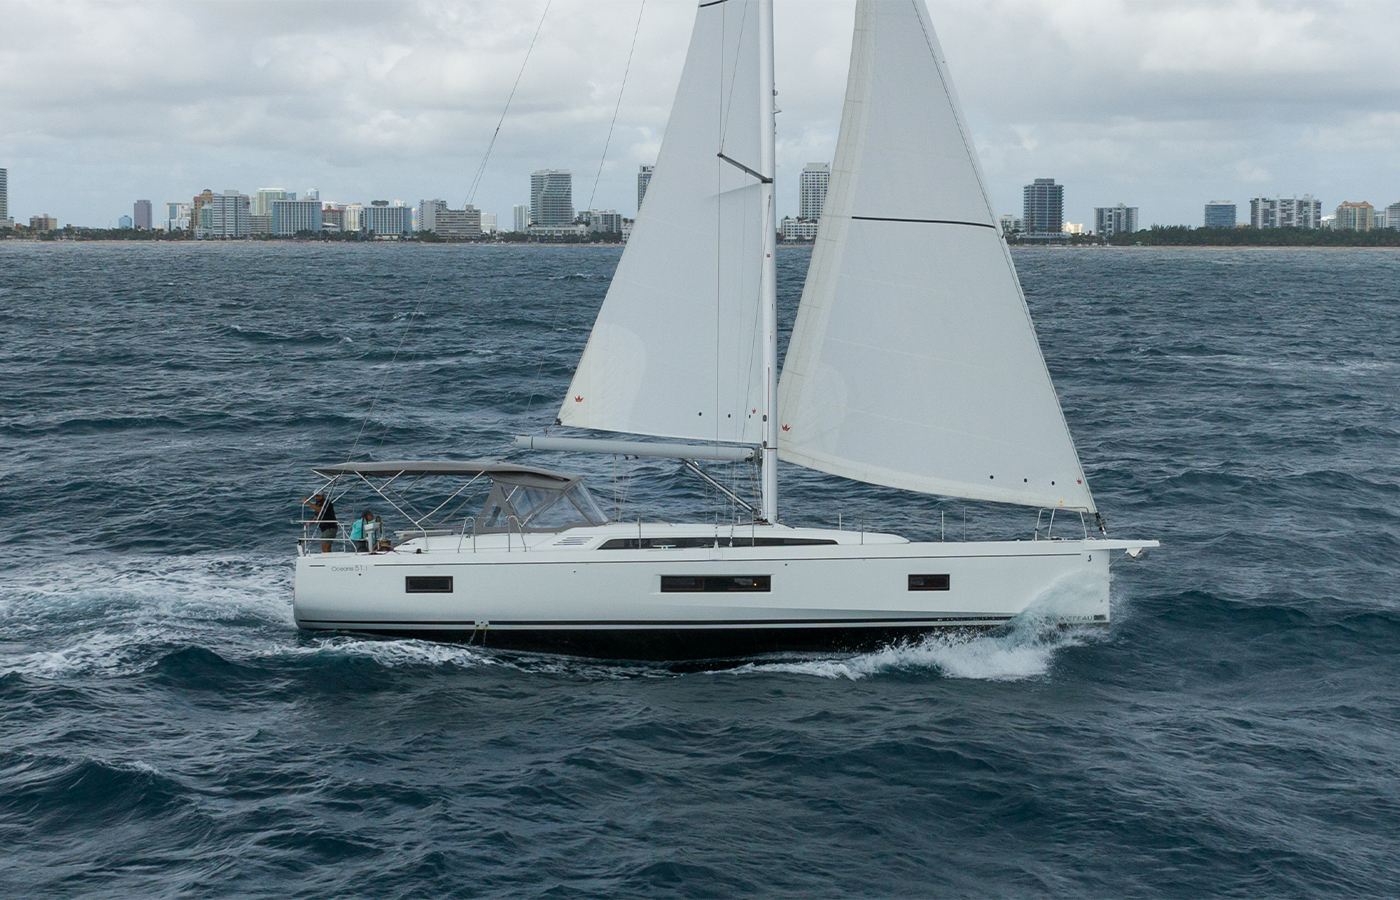 Beneteau Oceanis 51.1 Sailboat Highlight [Boat Review + Video]